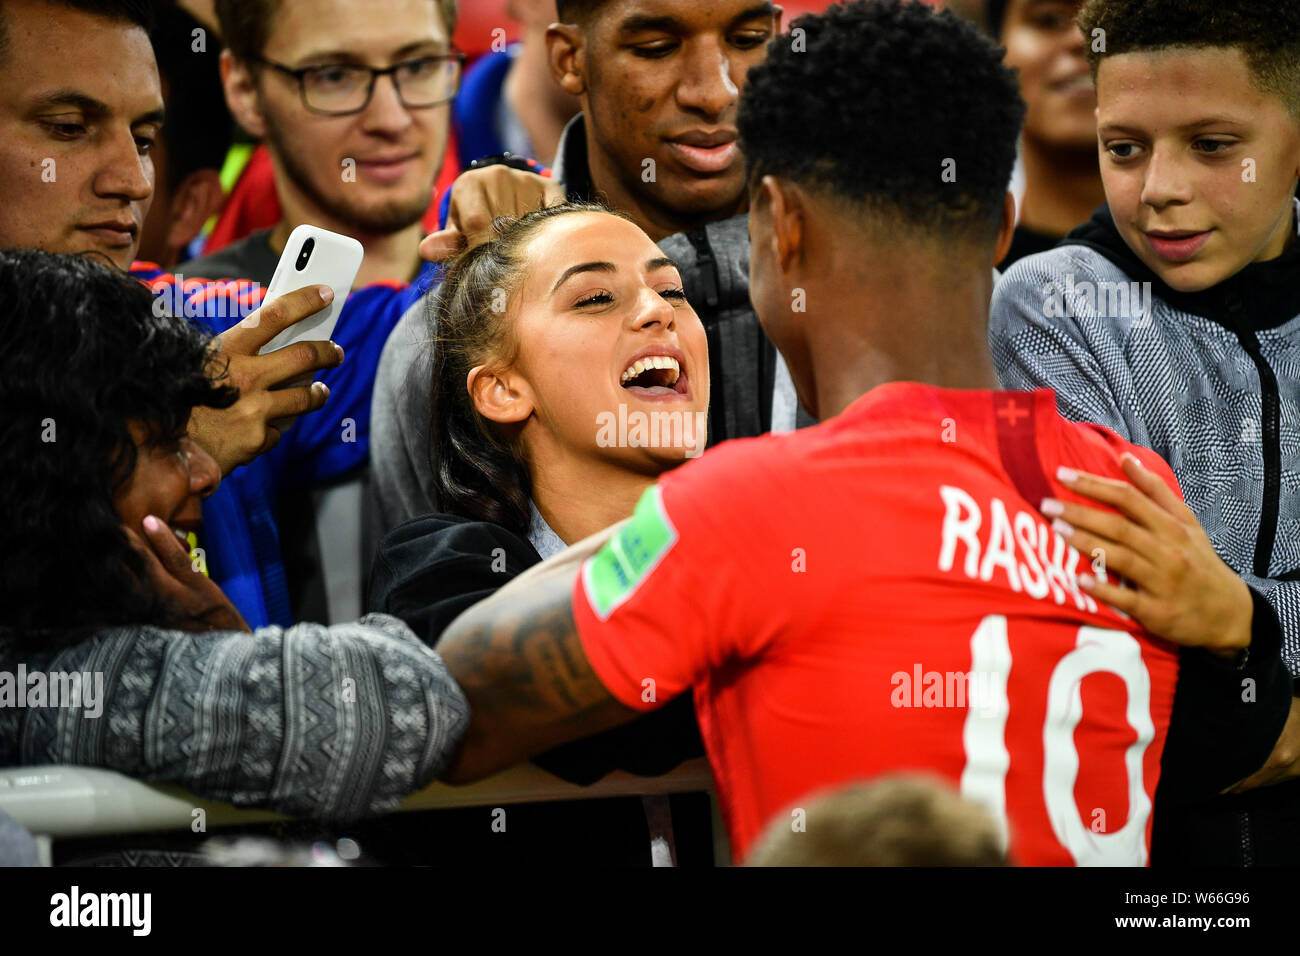 Marcus Rashford Of England Celebrates With His Families And Friends After Defeating Columbia In Their Round Of 16 Match During The 2018 Fifa World Cup Stock Photo Alamy